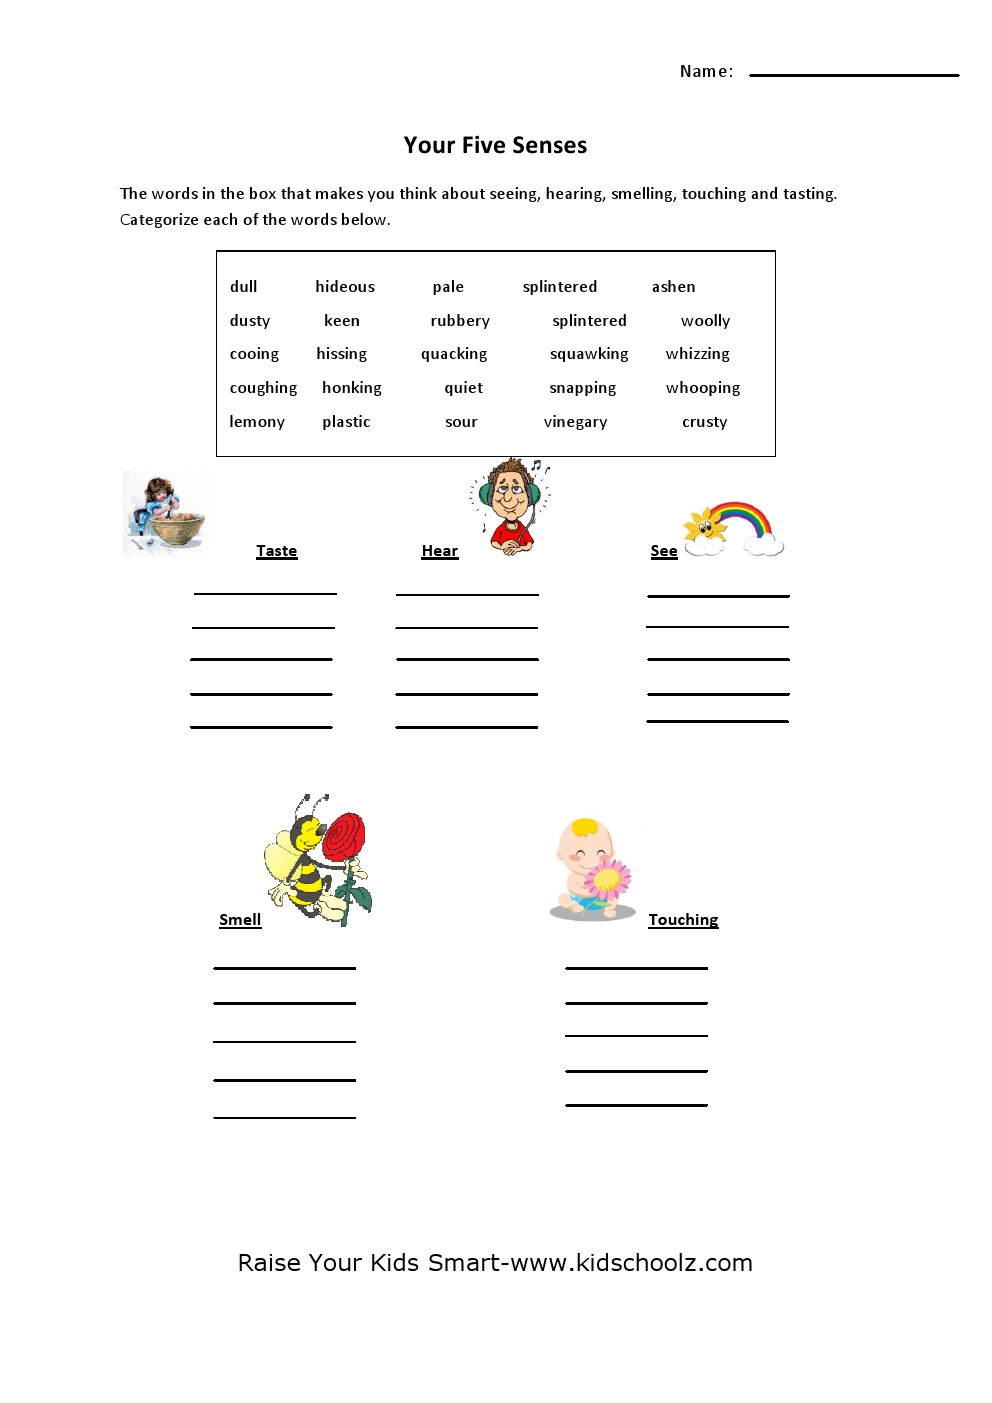 Workbooks worksheets for grade 3 : Grade 4 - Five Senses Worksheet 3 - Kidschoolz